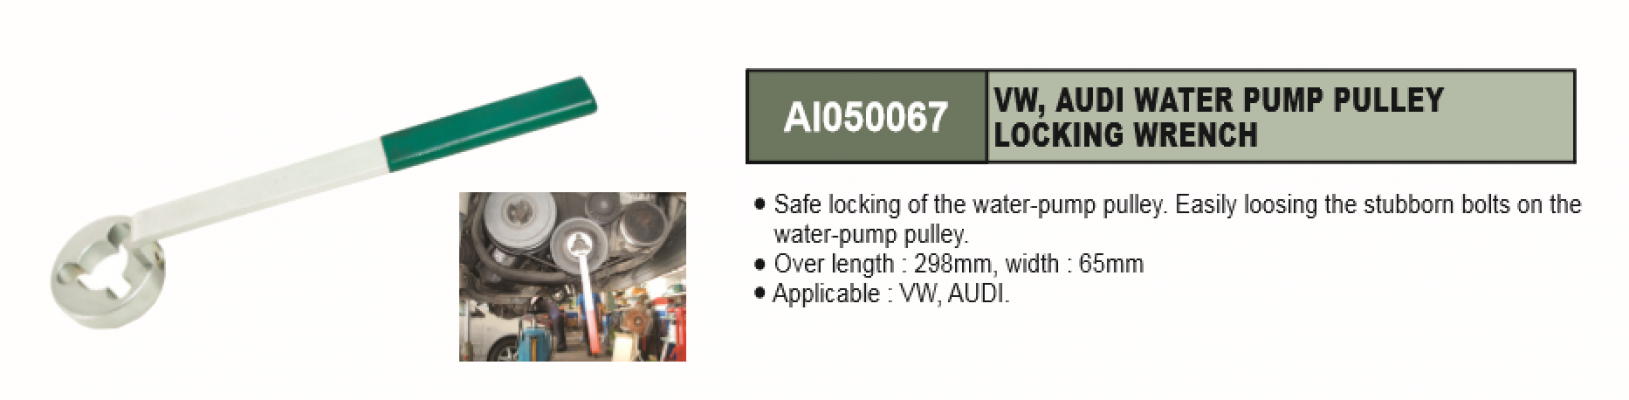 VW, AUDI WATER PUMP PULLEY LOCKING WRENCH - AI050067